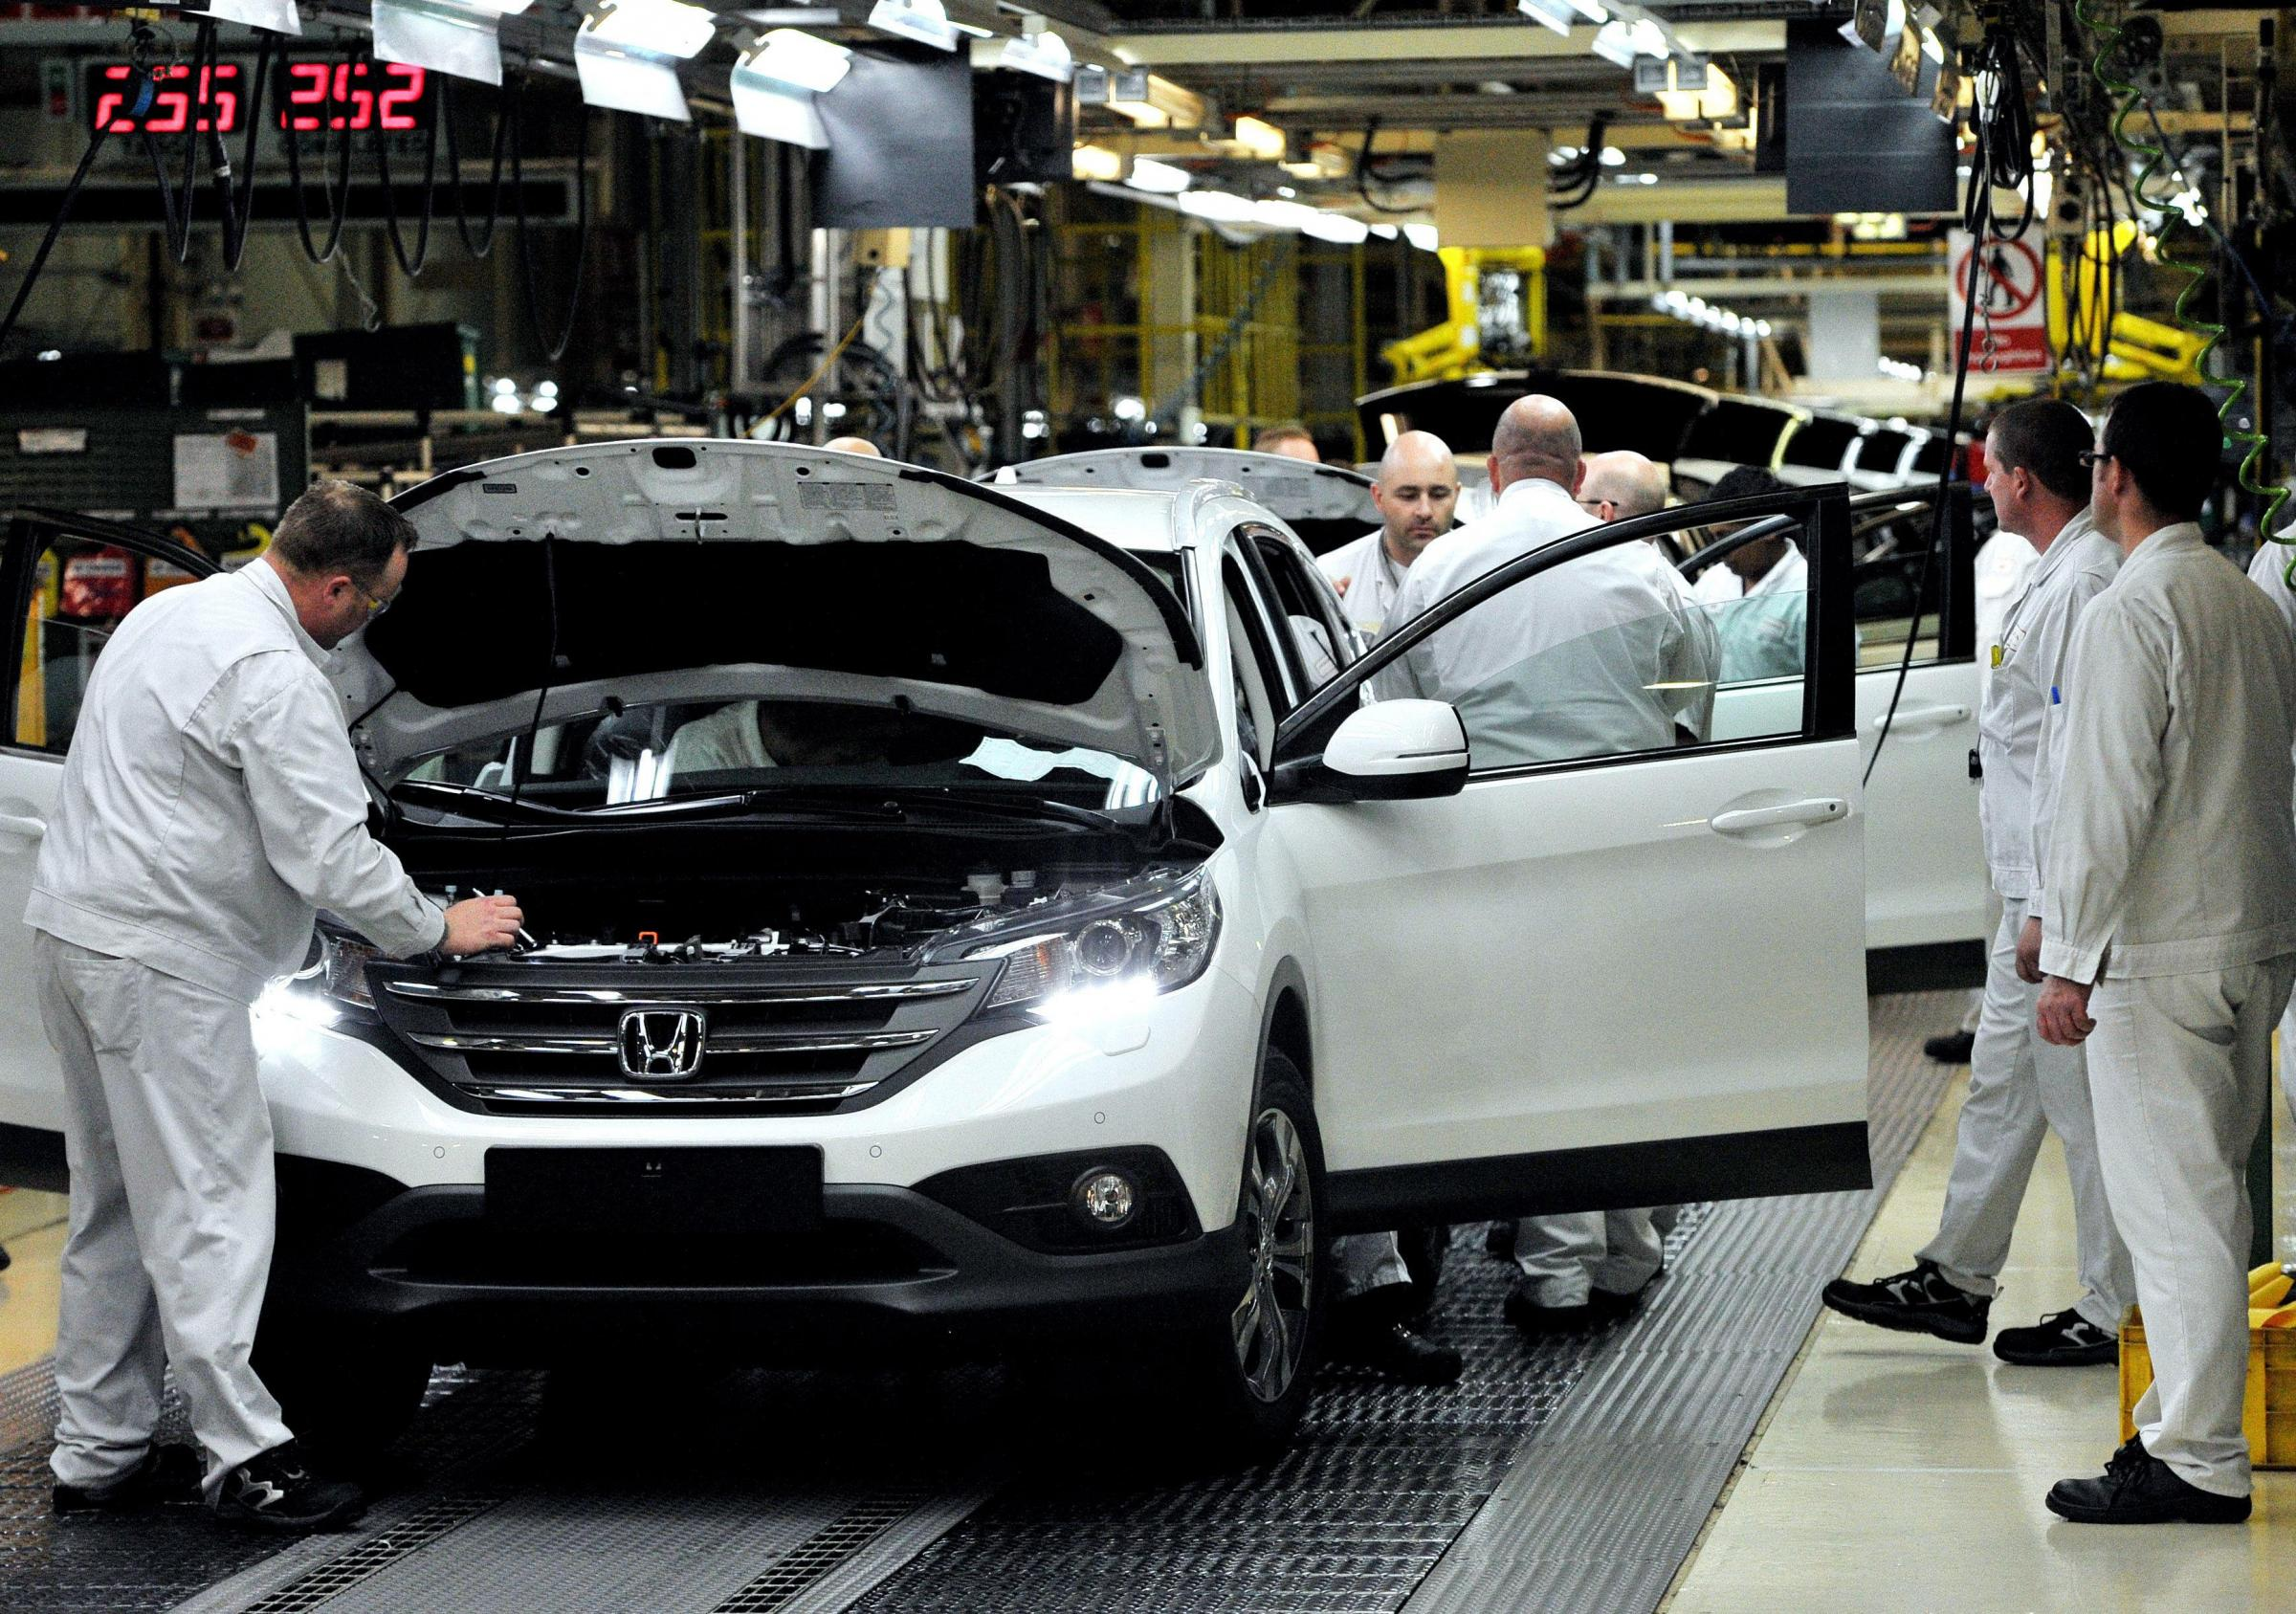 Workers on the production line at the Honda Plant in South Marston that will halt production for six days as a contingency plan for any disruption at the border after March 29.